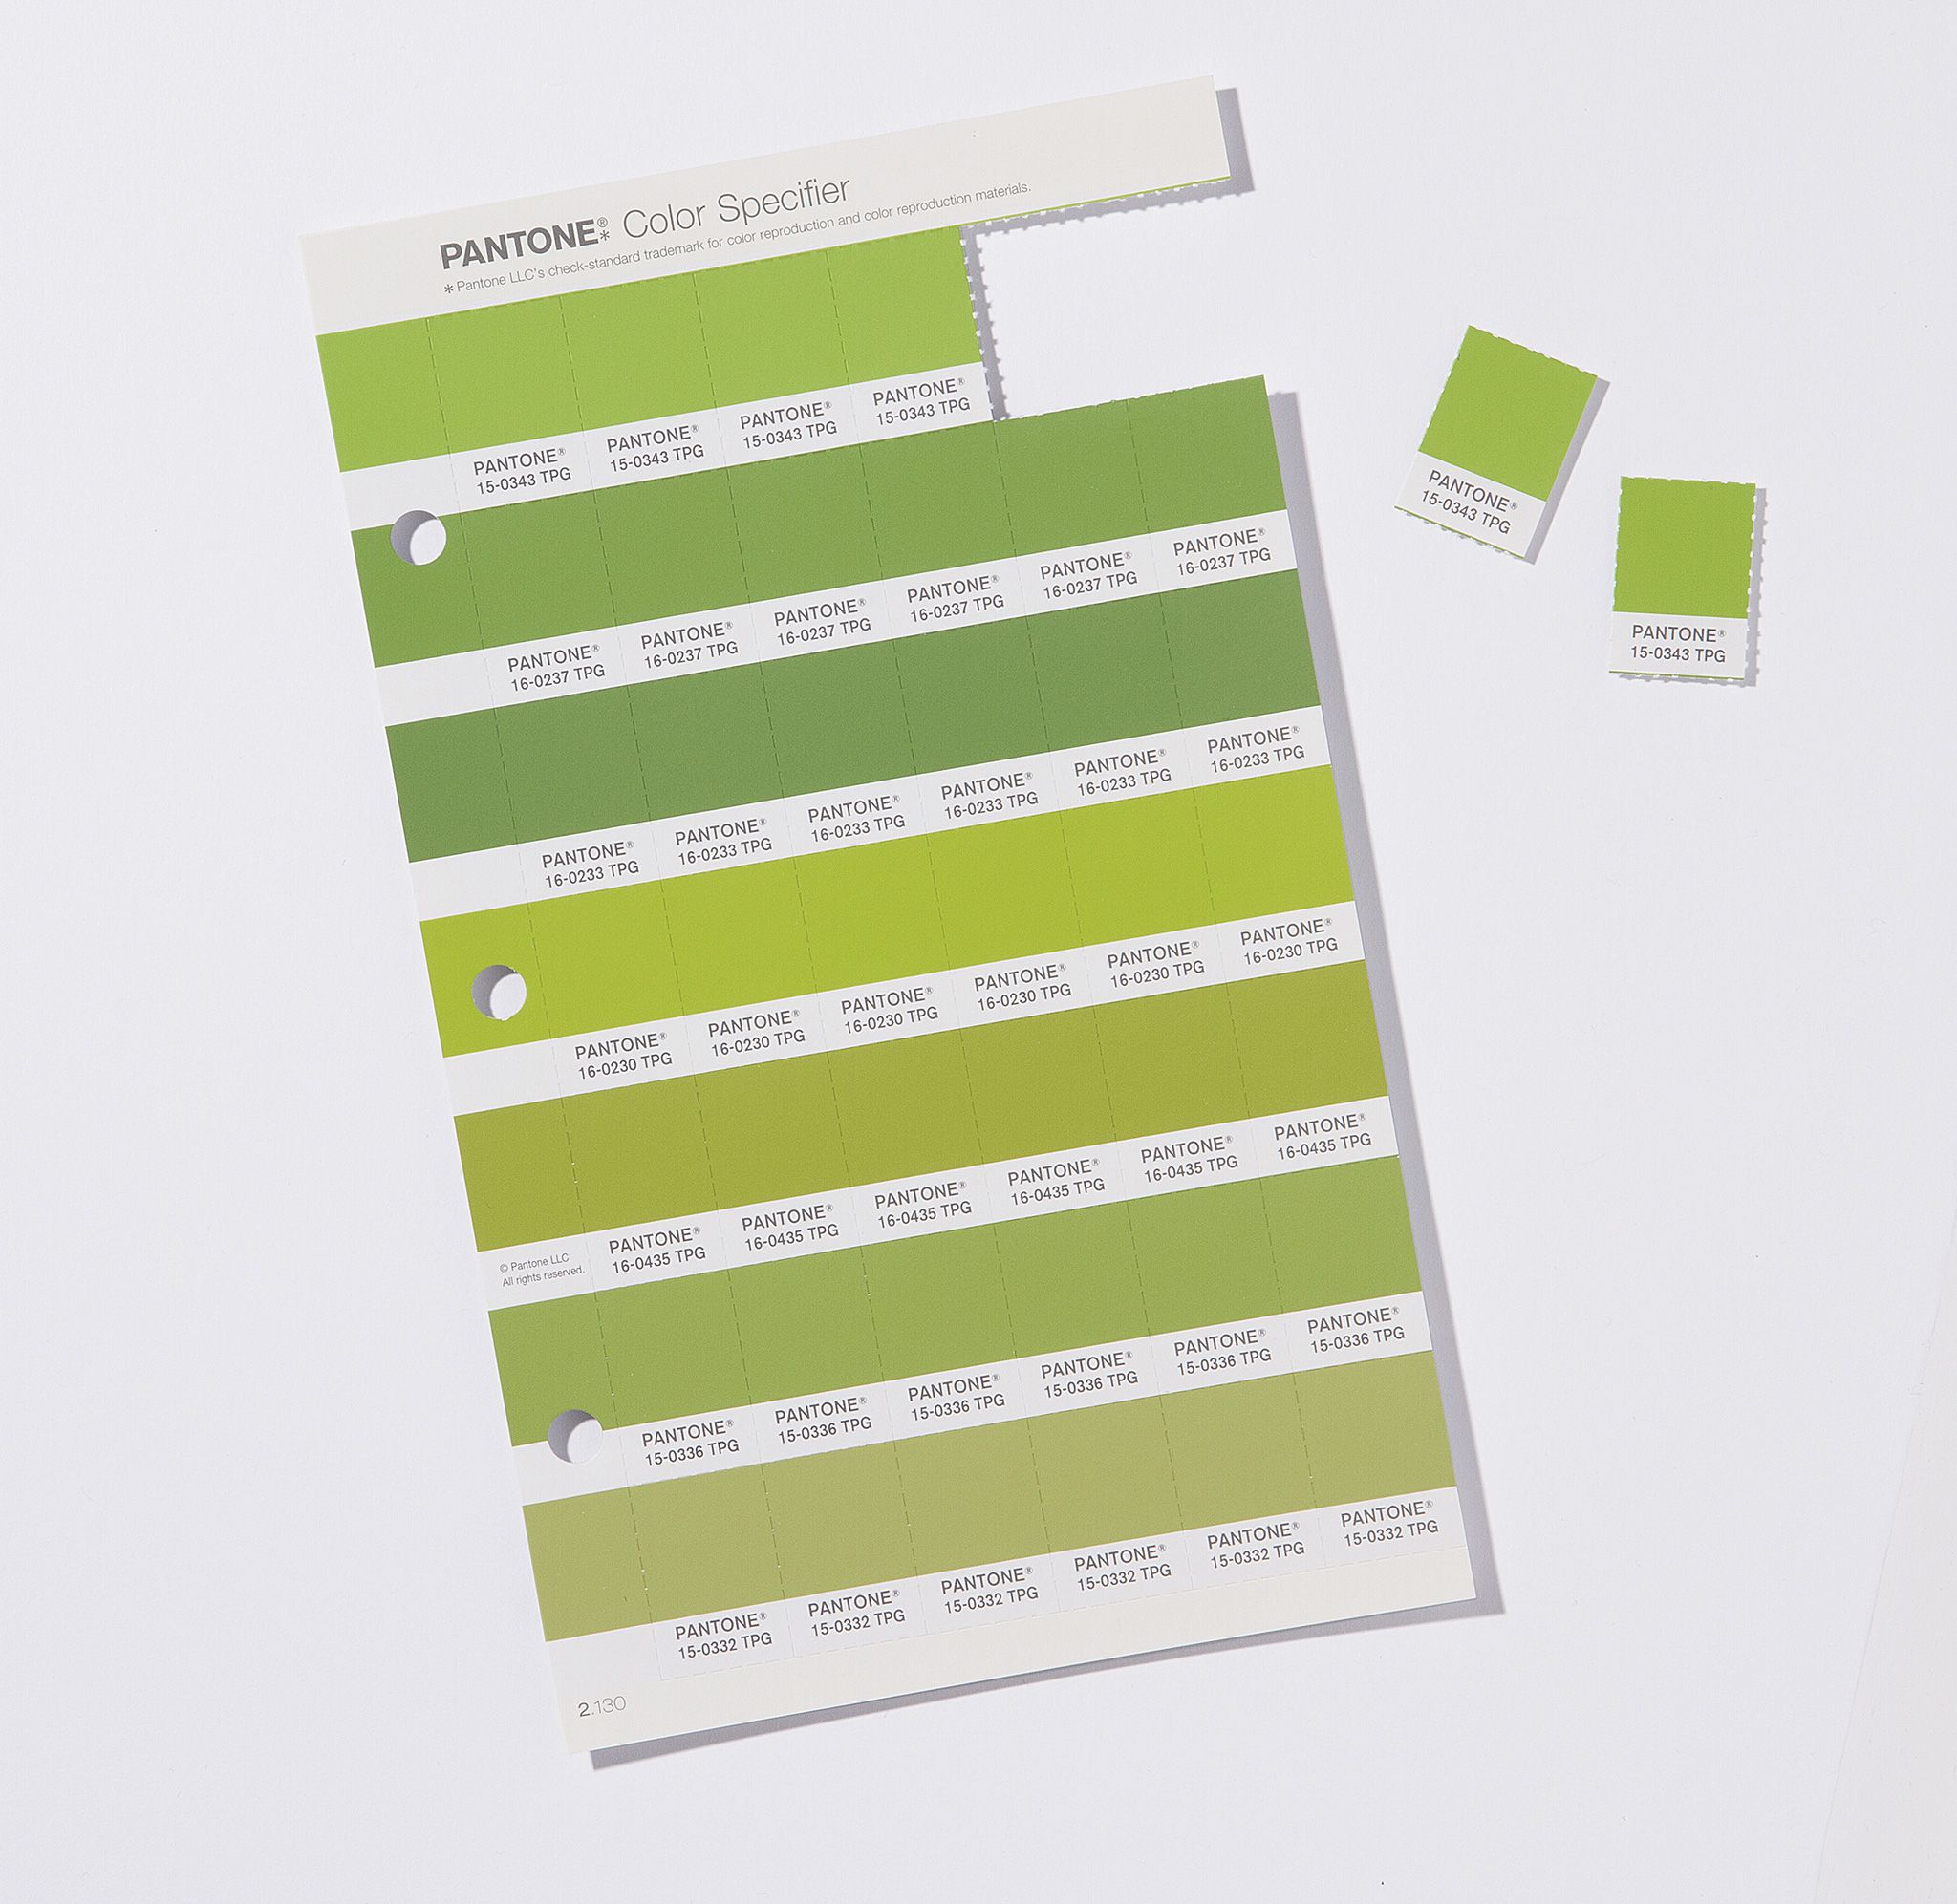 A Refreshing and Revitalizing Shade, Greenery is Symbolic of New Beginnings Pantone, an X-Rite company and the global authority on color and provider of professional color standards for the design industries, today announced PANTONE® 15-0343 Greenery as the PANTONE® Color of the Year selection for...